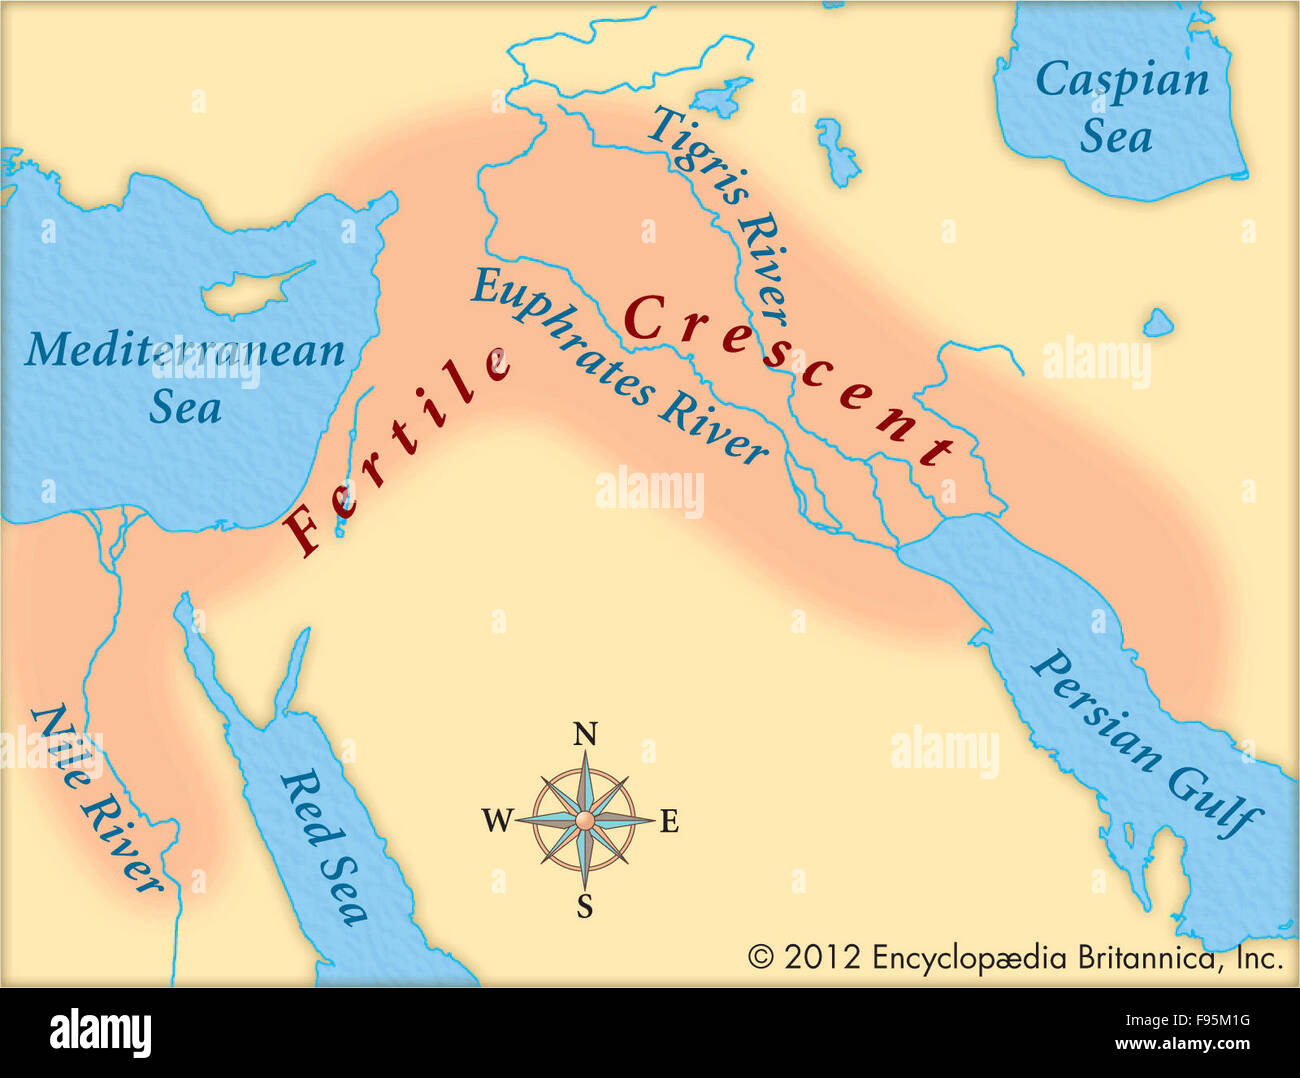 history of the fertile crescent history essay Free essay examples, how to write essay on fertile crescent ancient people society example essay, research paper, custom writing write my essay on ancient people chinese.